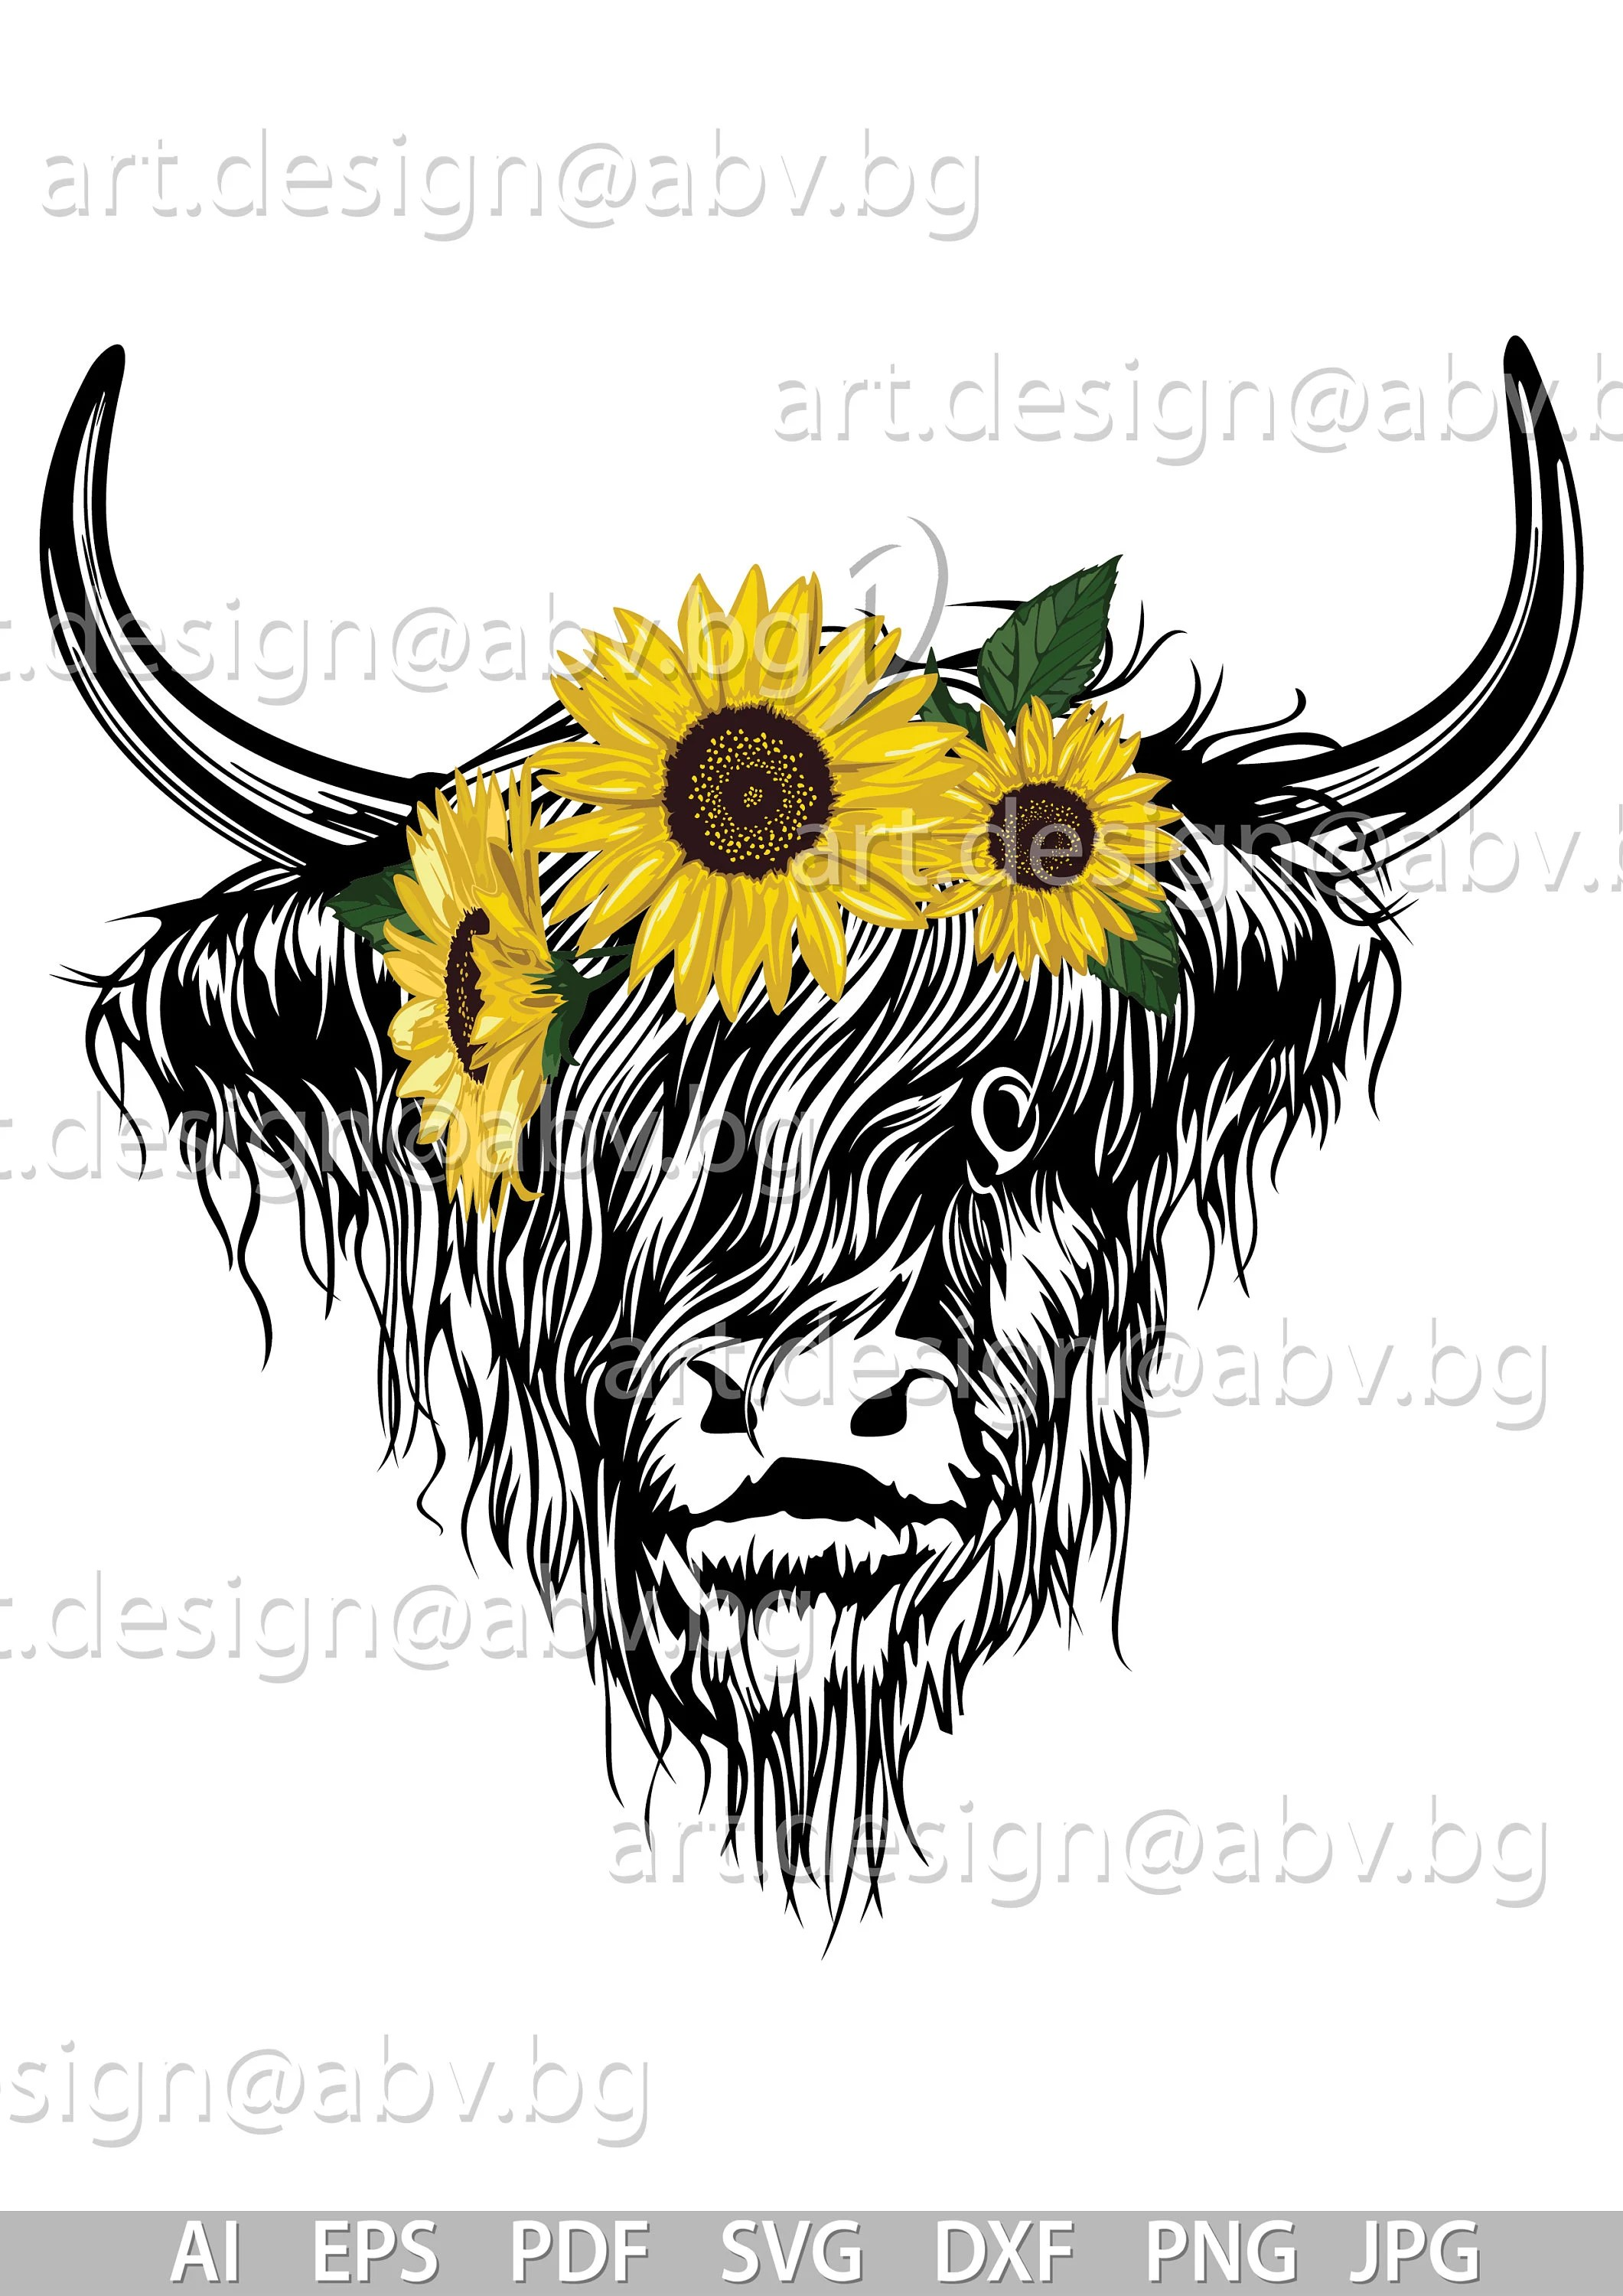 Cute Cow Svg : Vector, BUFFALO, Sunflowers, Highland